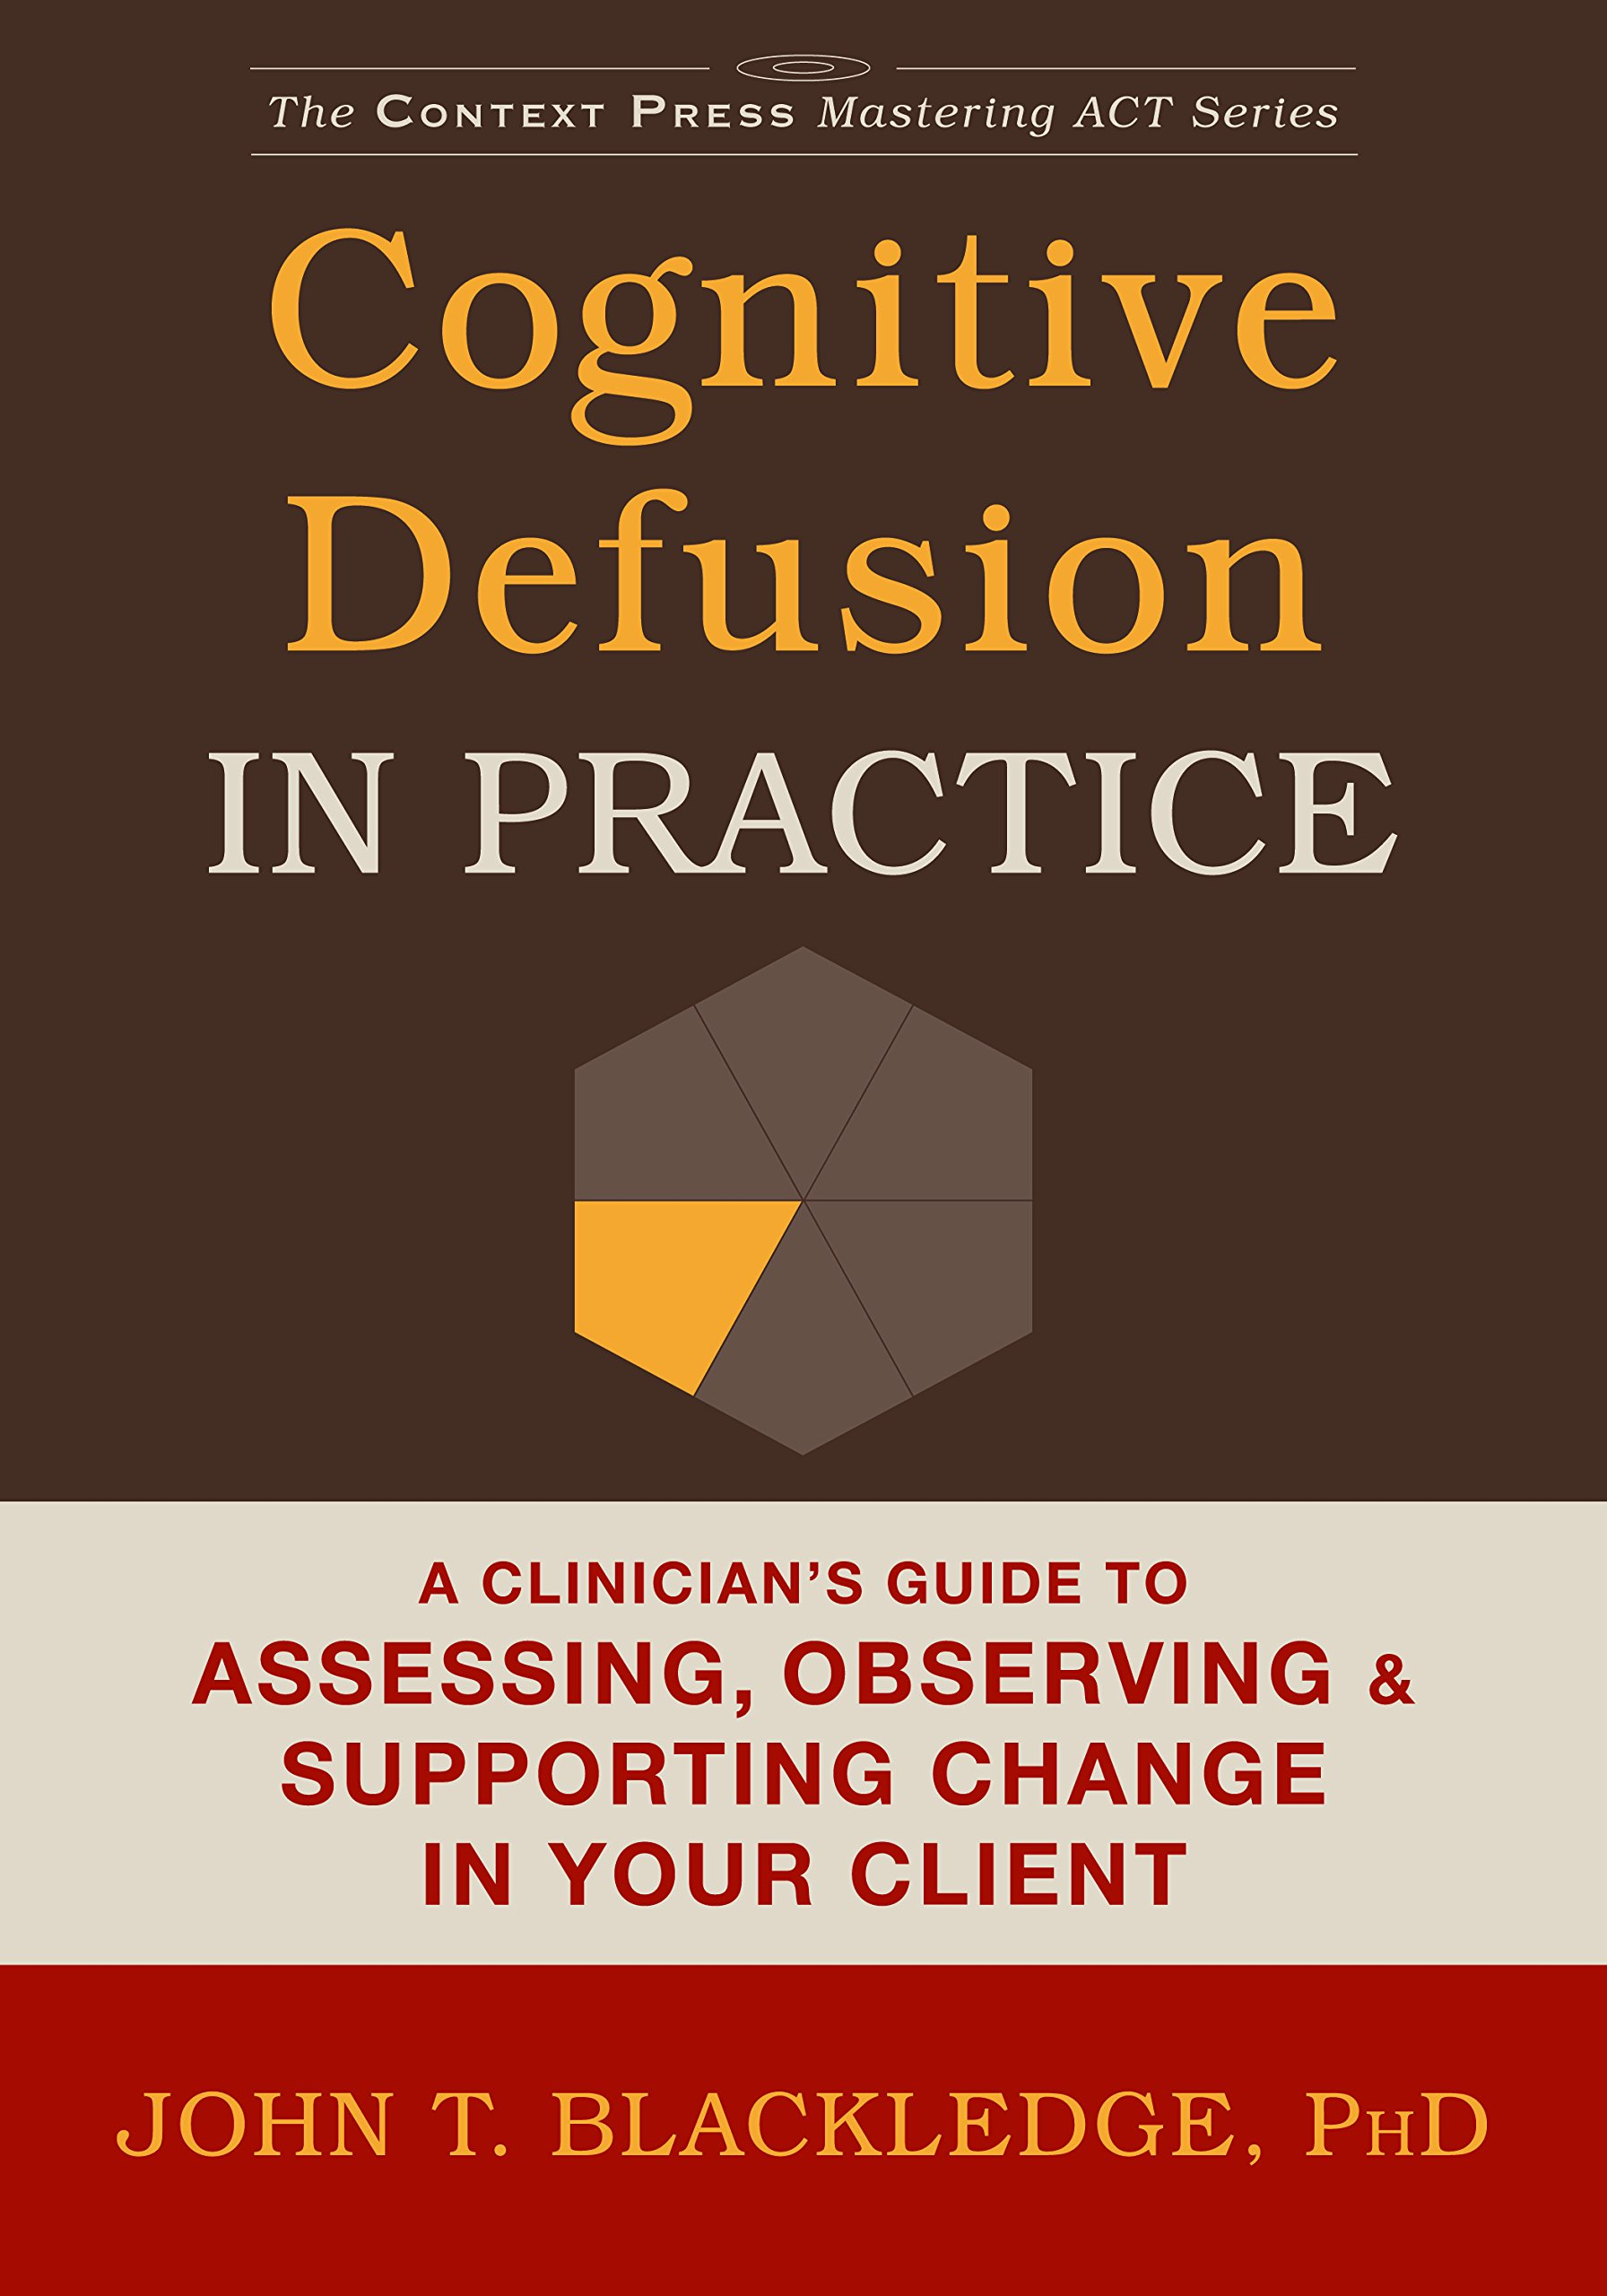 Cognitive Defusion in Practice: A Clinician's Guide to Assessing, Observing, and Supporting Change in Your Client (The Context Press Mastering ACT Series) ebook